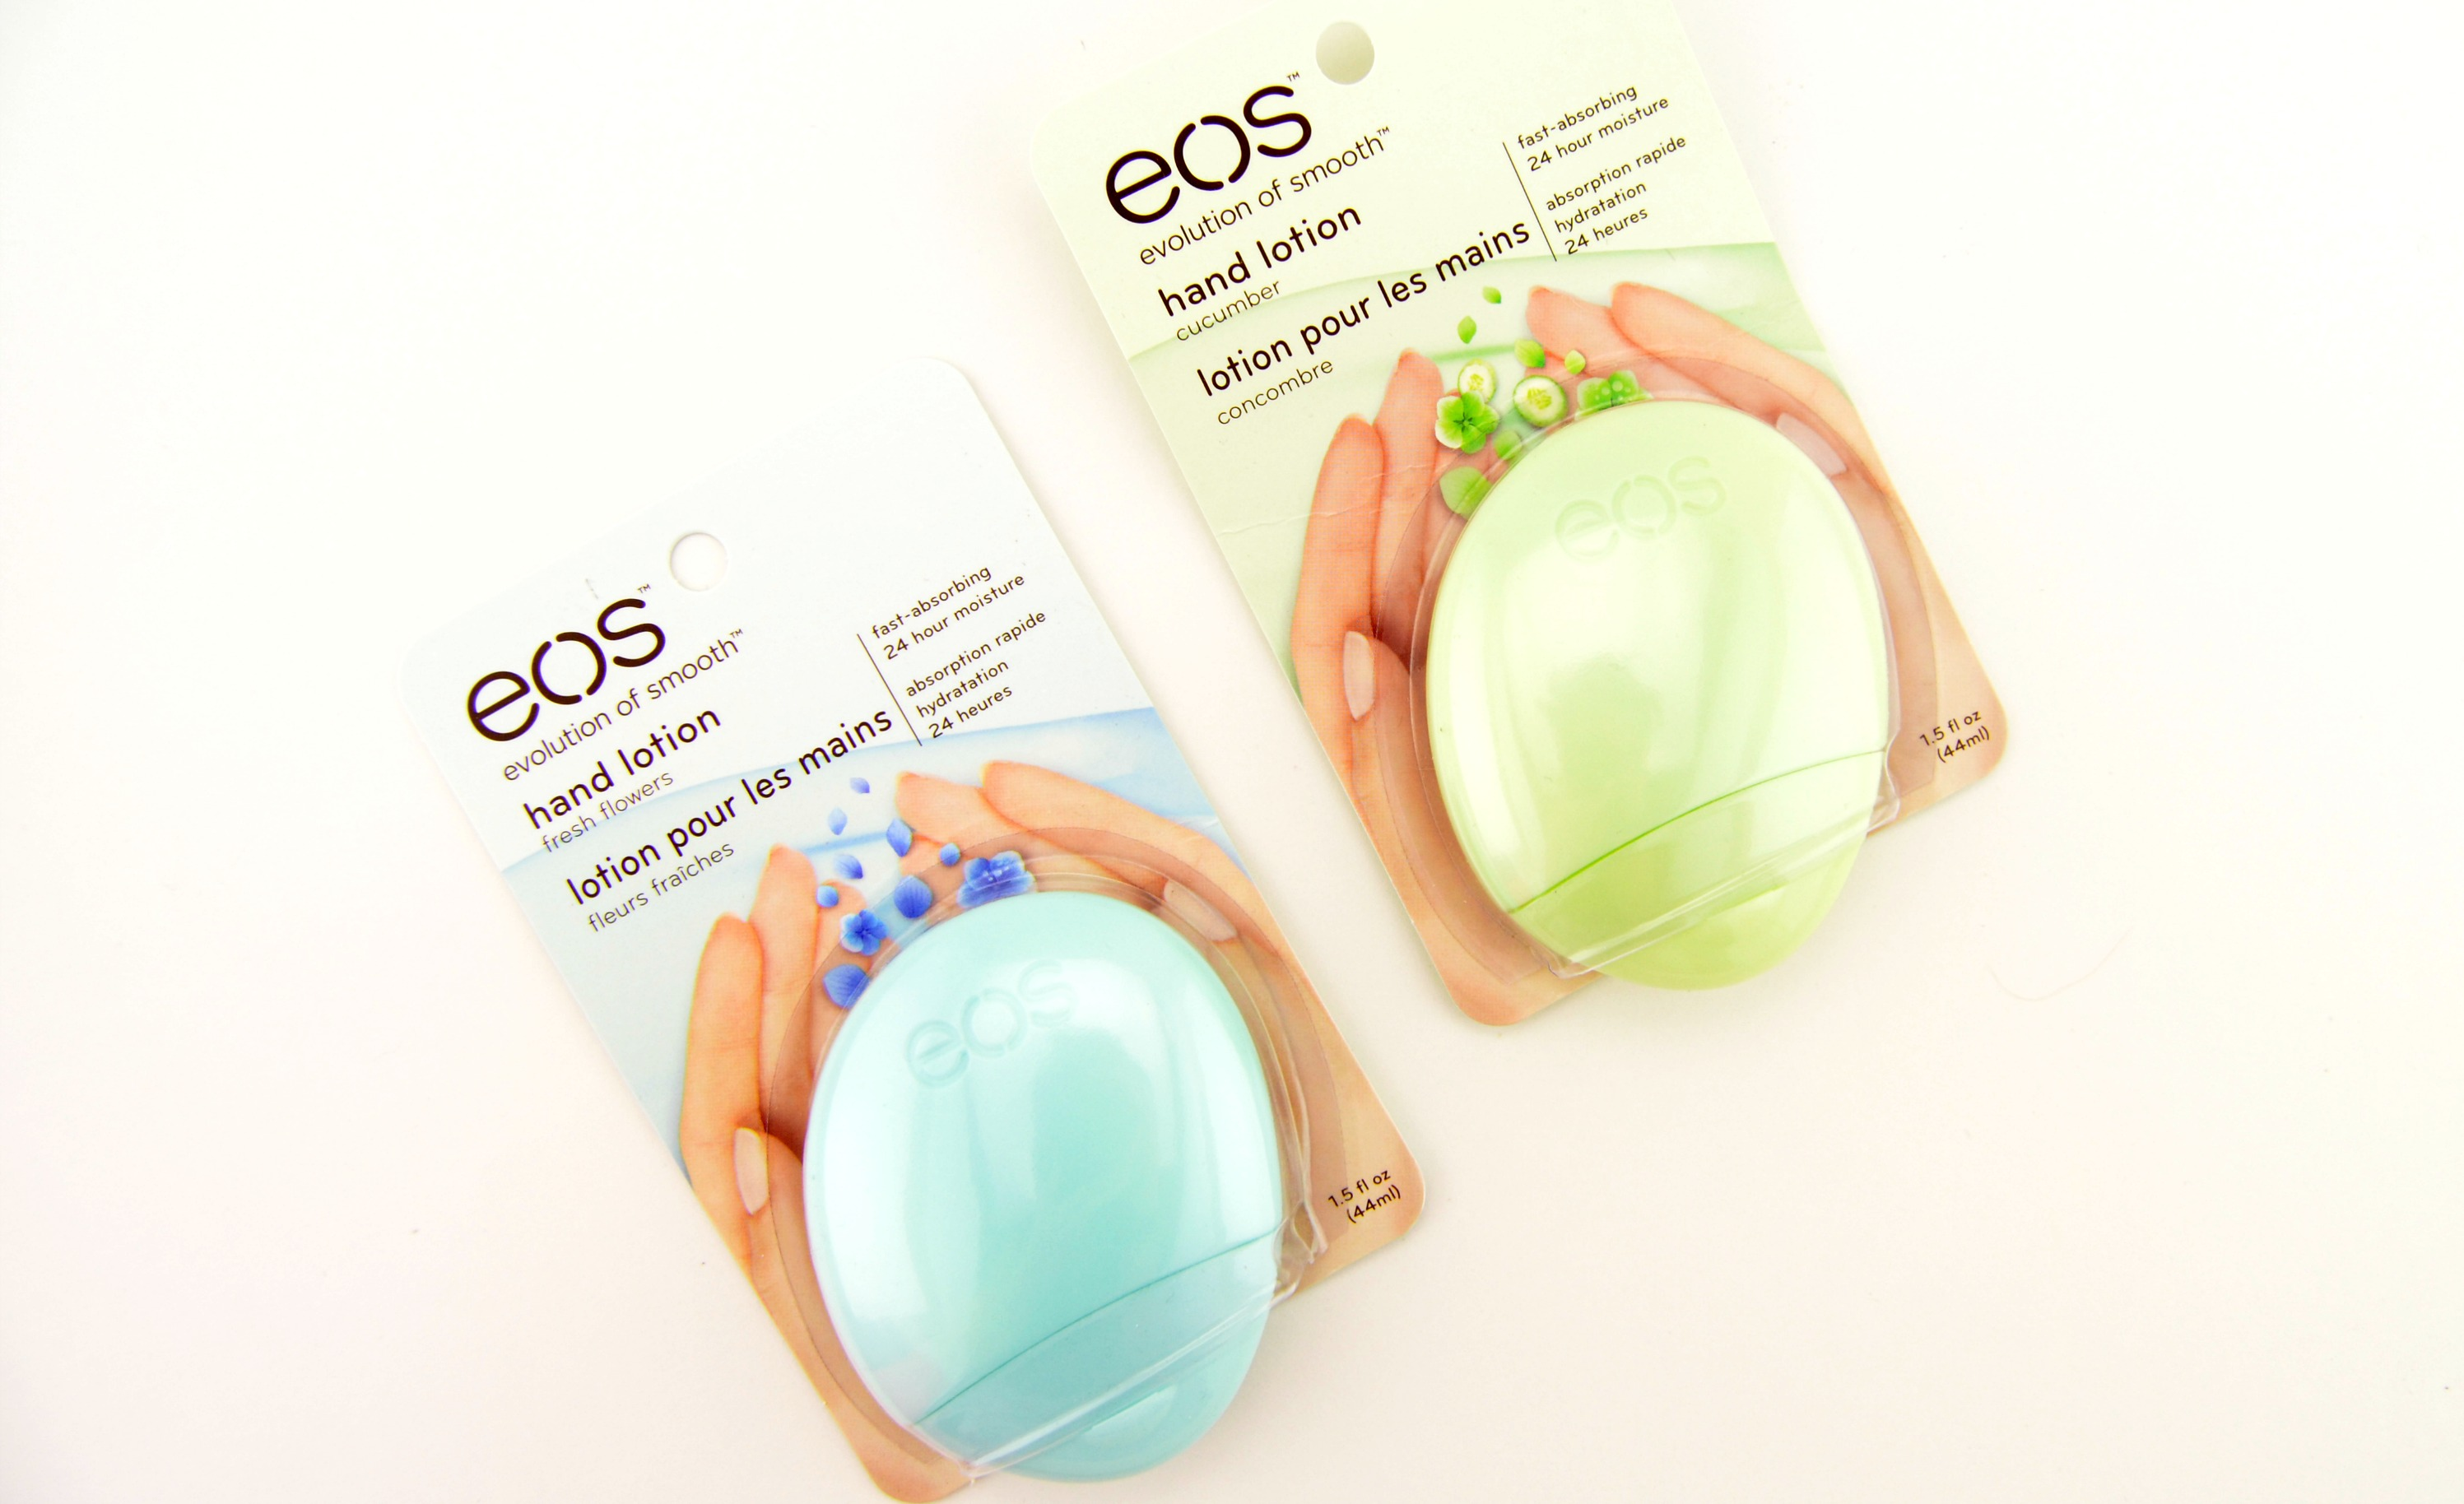 how to open eos hand lotion